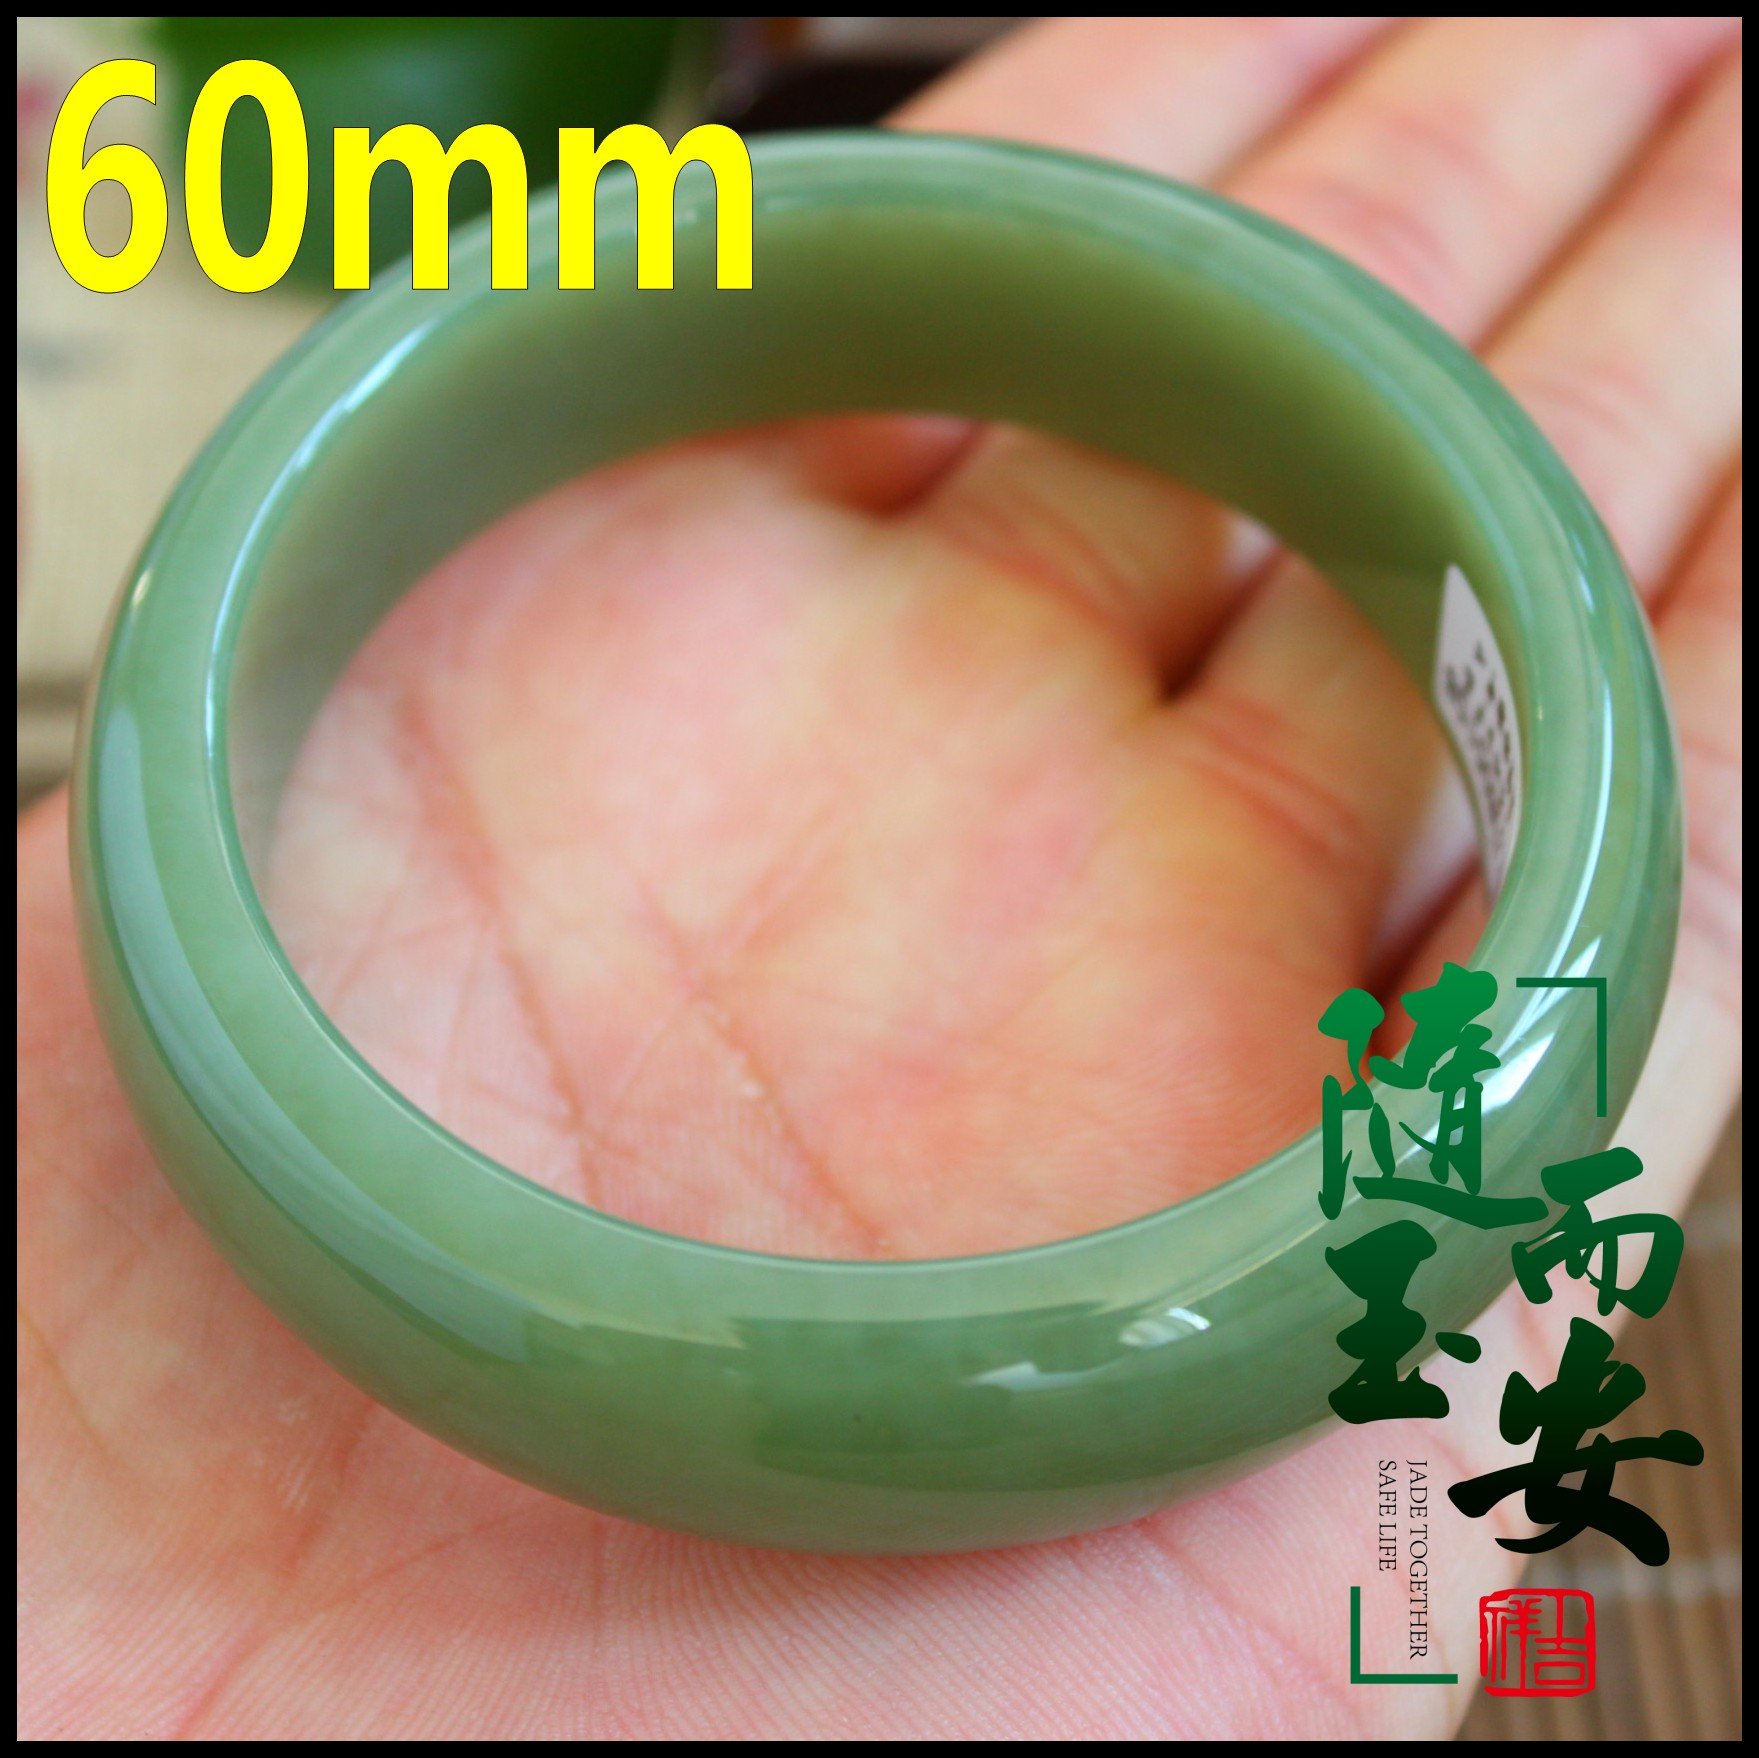 bracelet beautiful others rare significant jade bangle original genuine december products